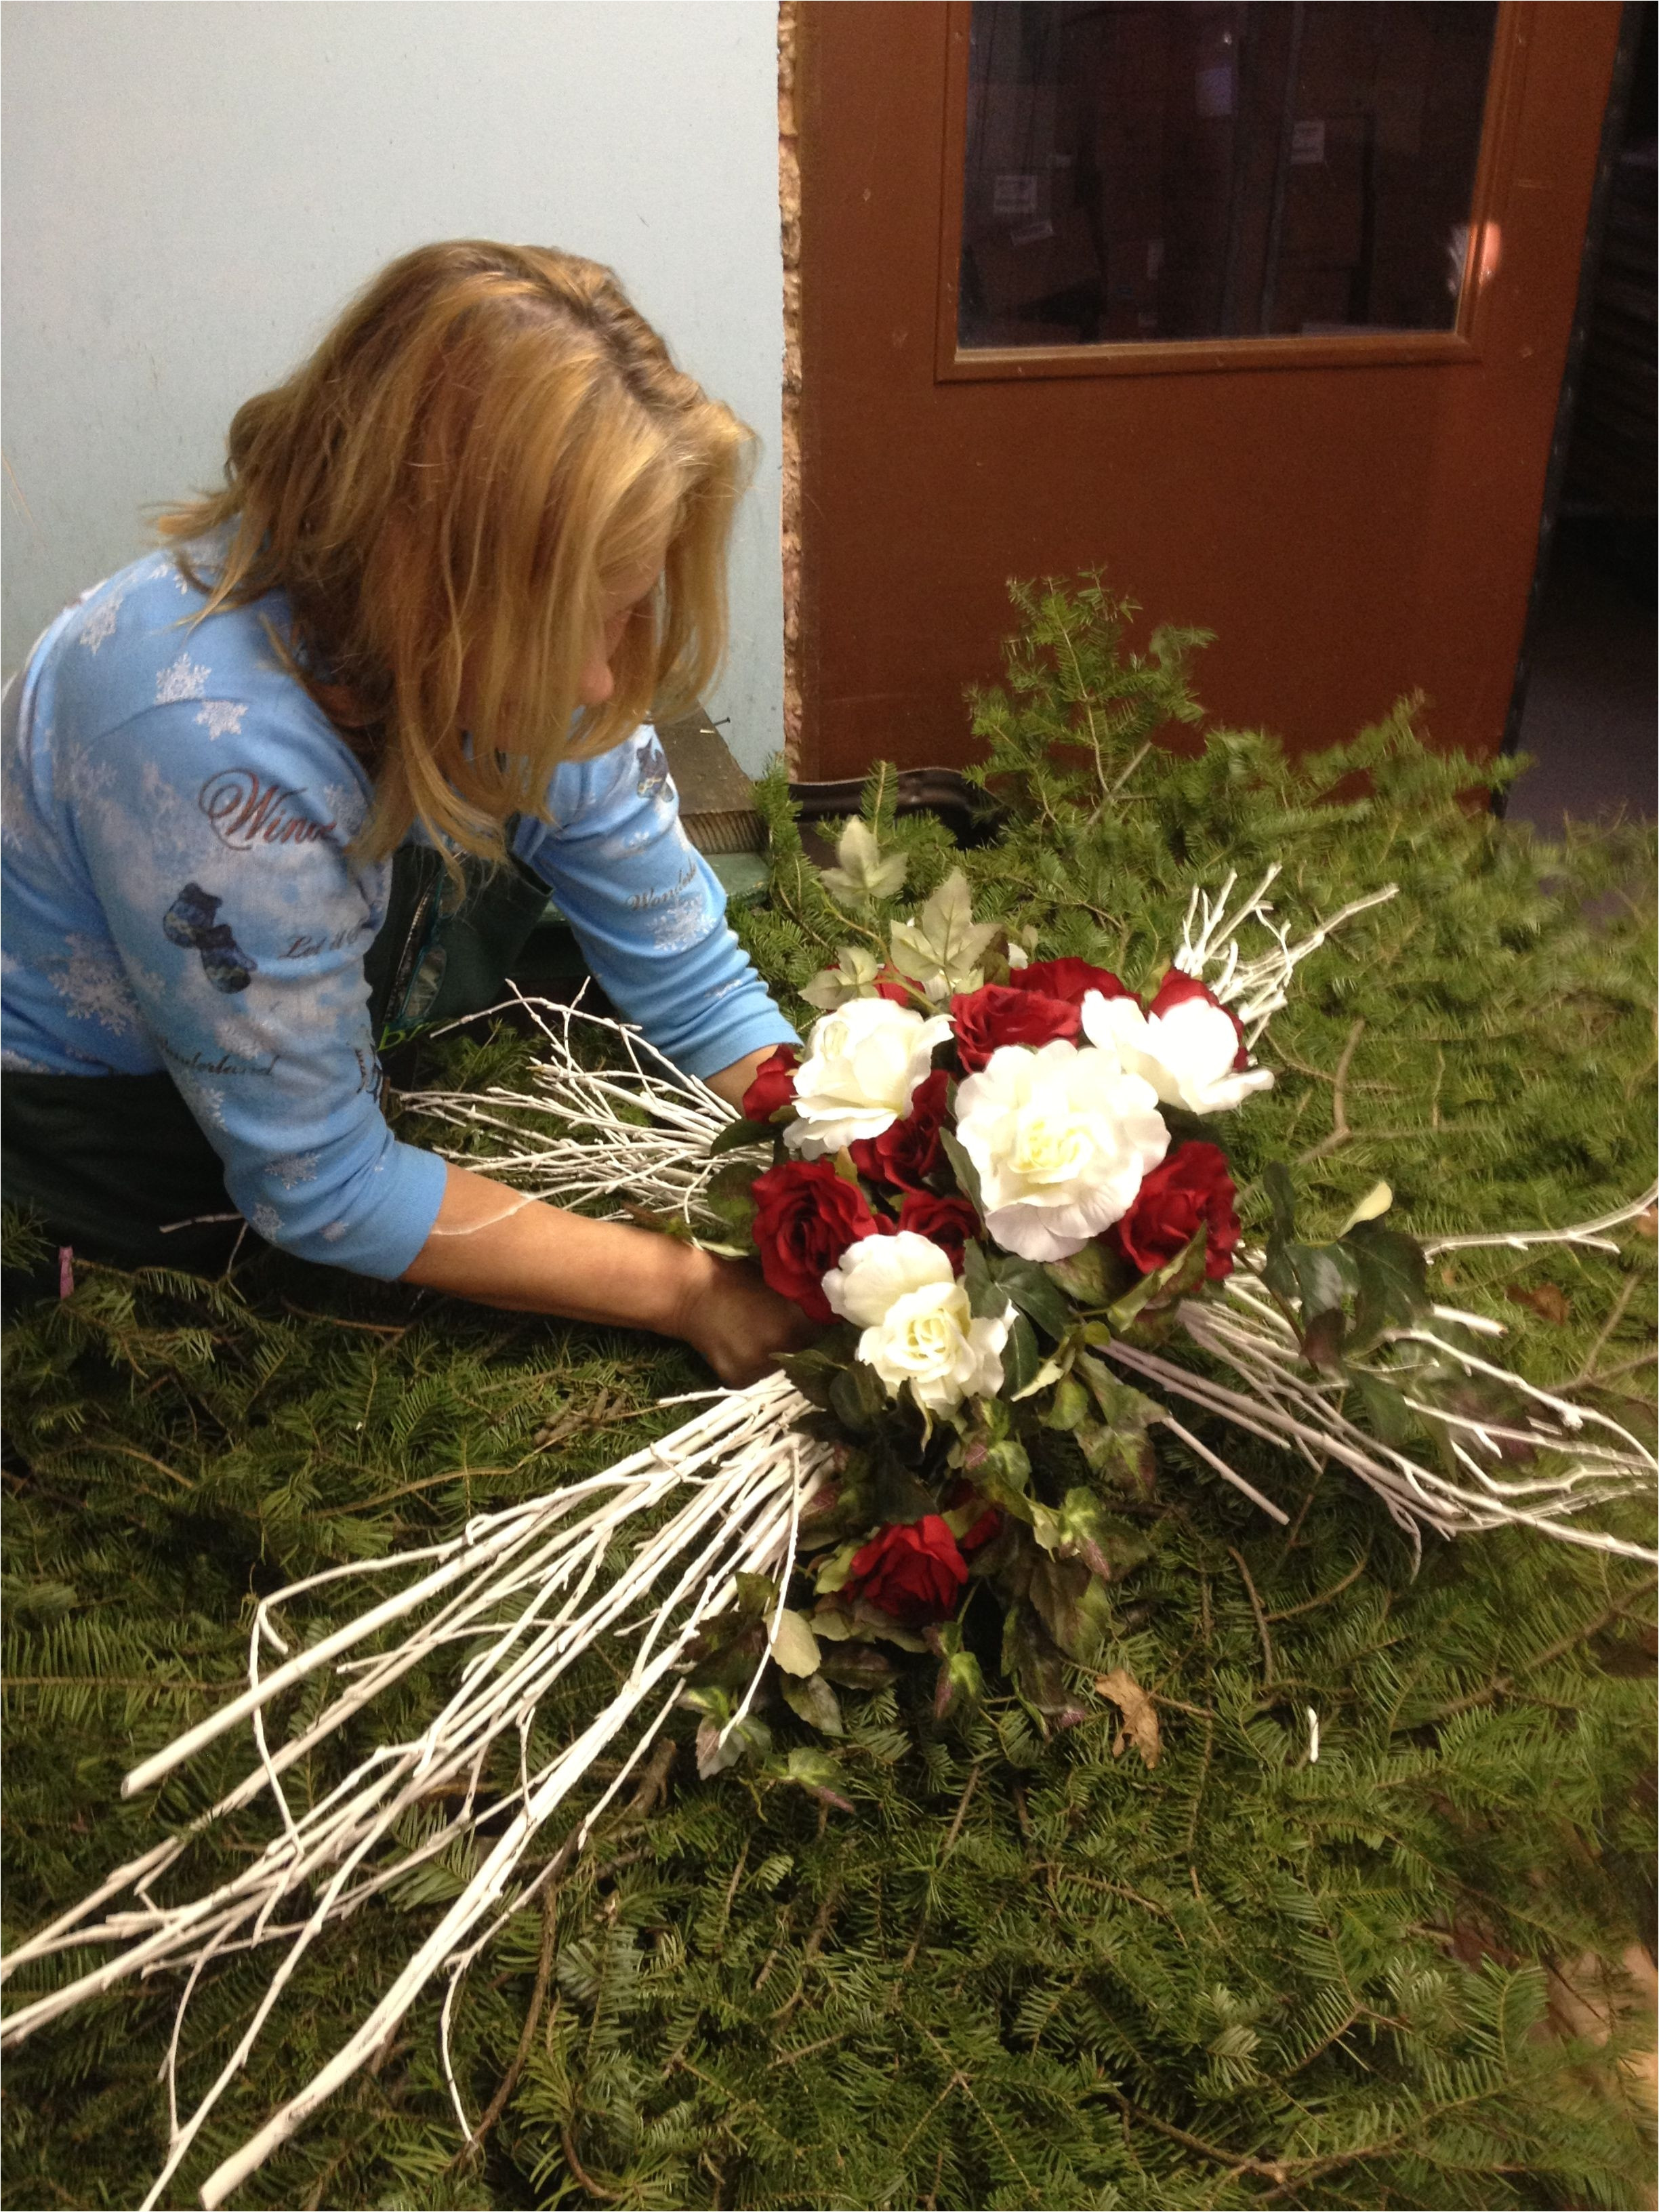 Stay In the Vase Cemetery Flowers Of Cross with Flowers Inspirational Cemetery Decoration Ideas This Throughout Cross with Flowers Inspirational Cemetery Decoration Ideas This Cross Was Custom Created for A Grave